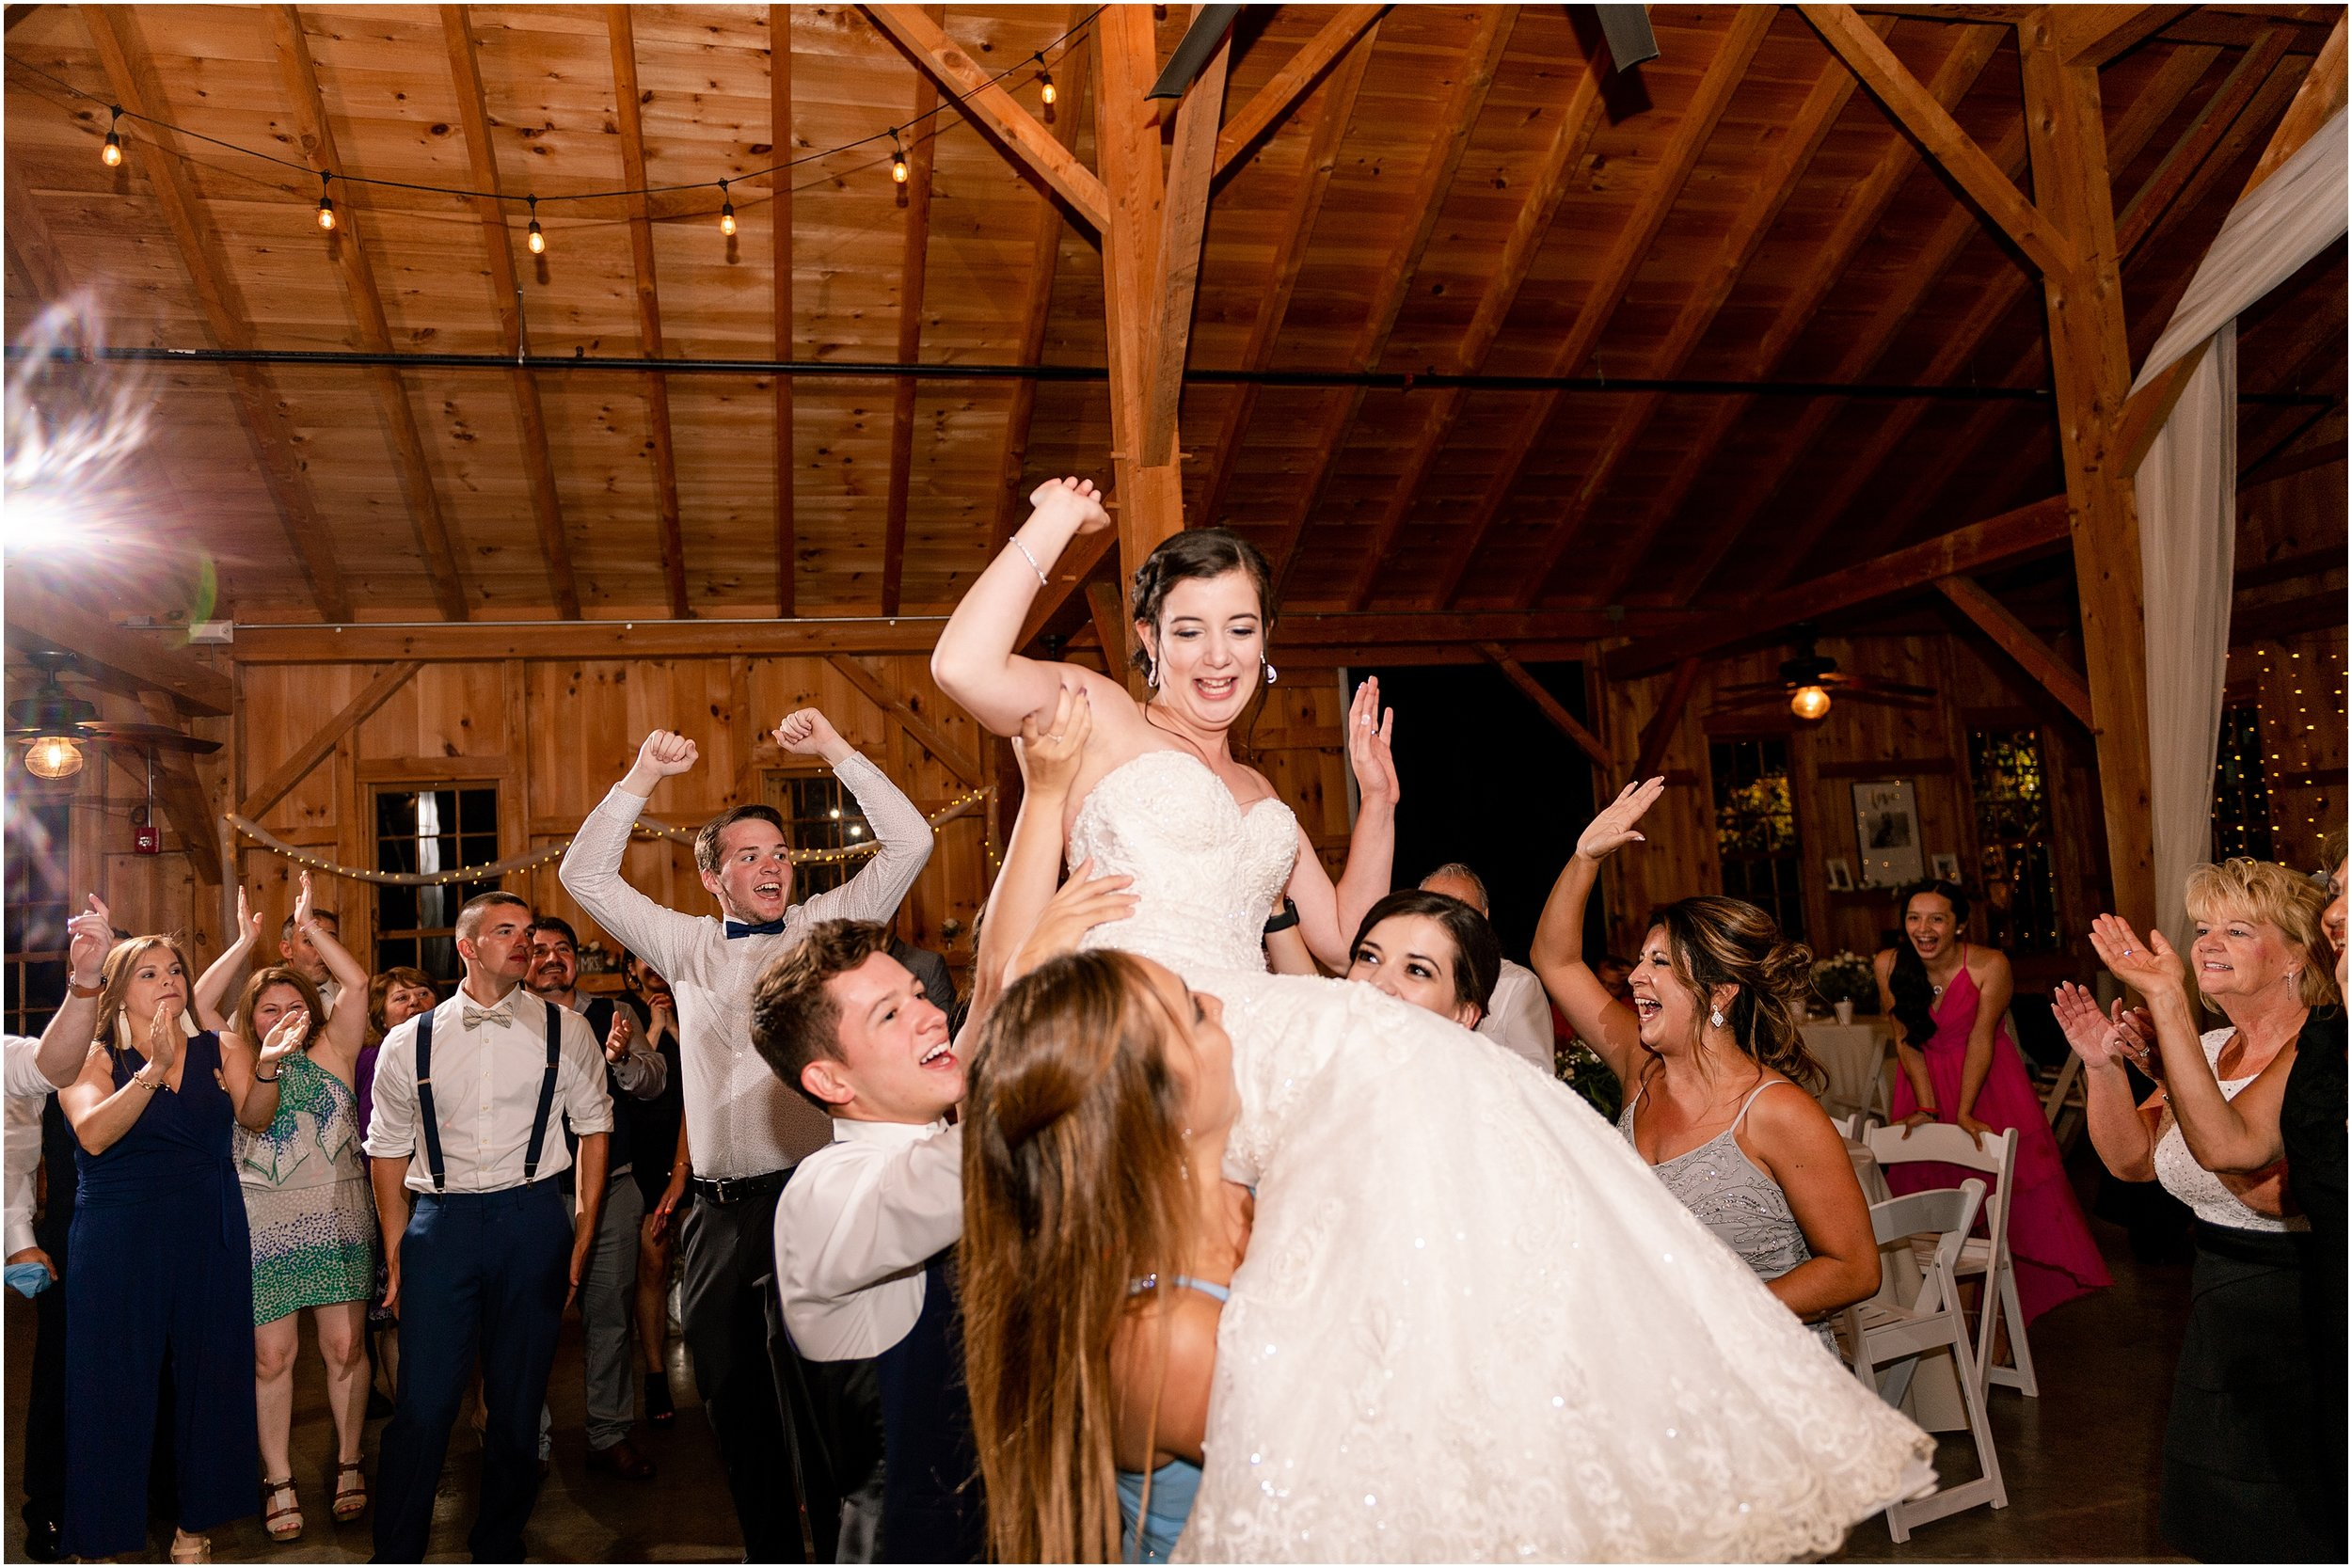 hannah leigh photography Pond View Farm Wedding White Hall MD_3695.jpg